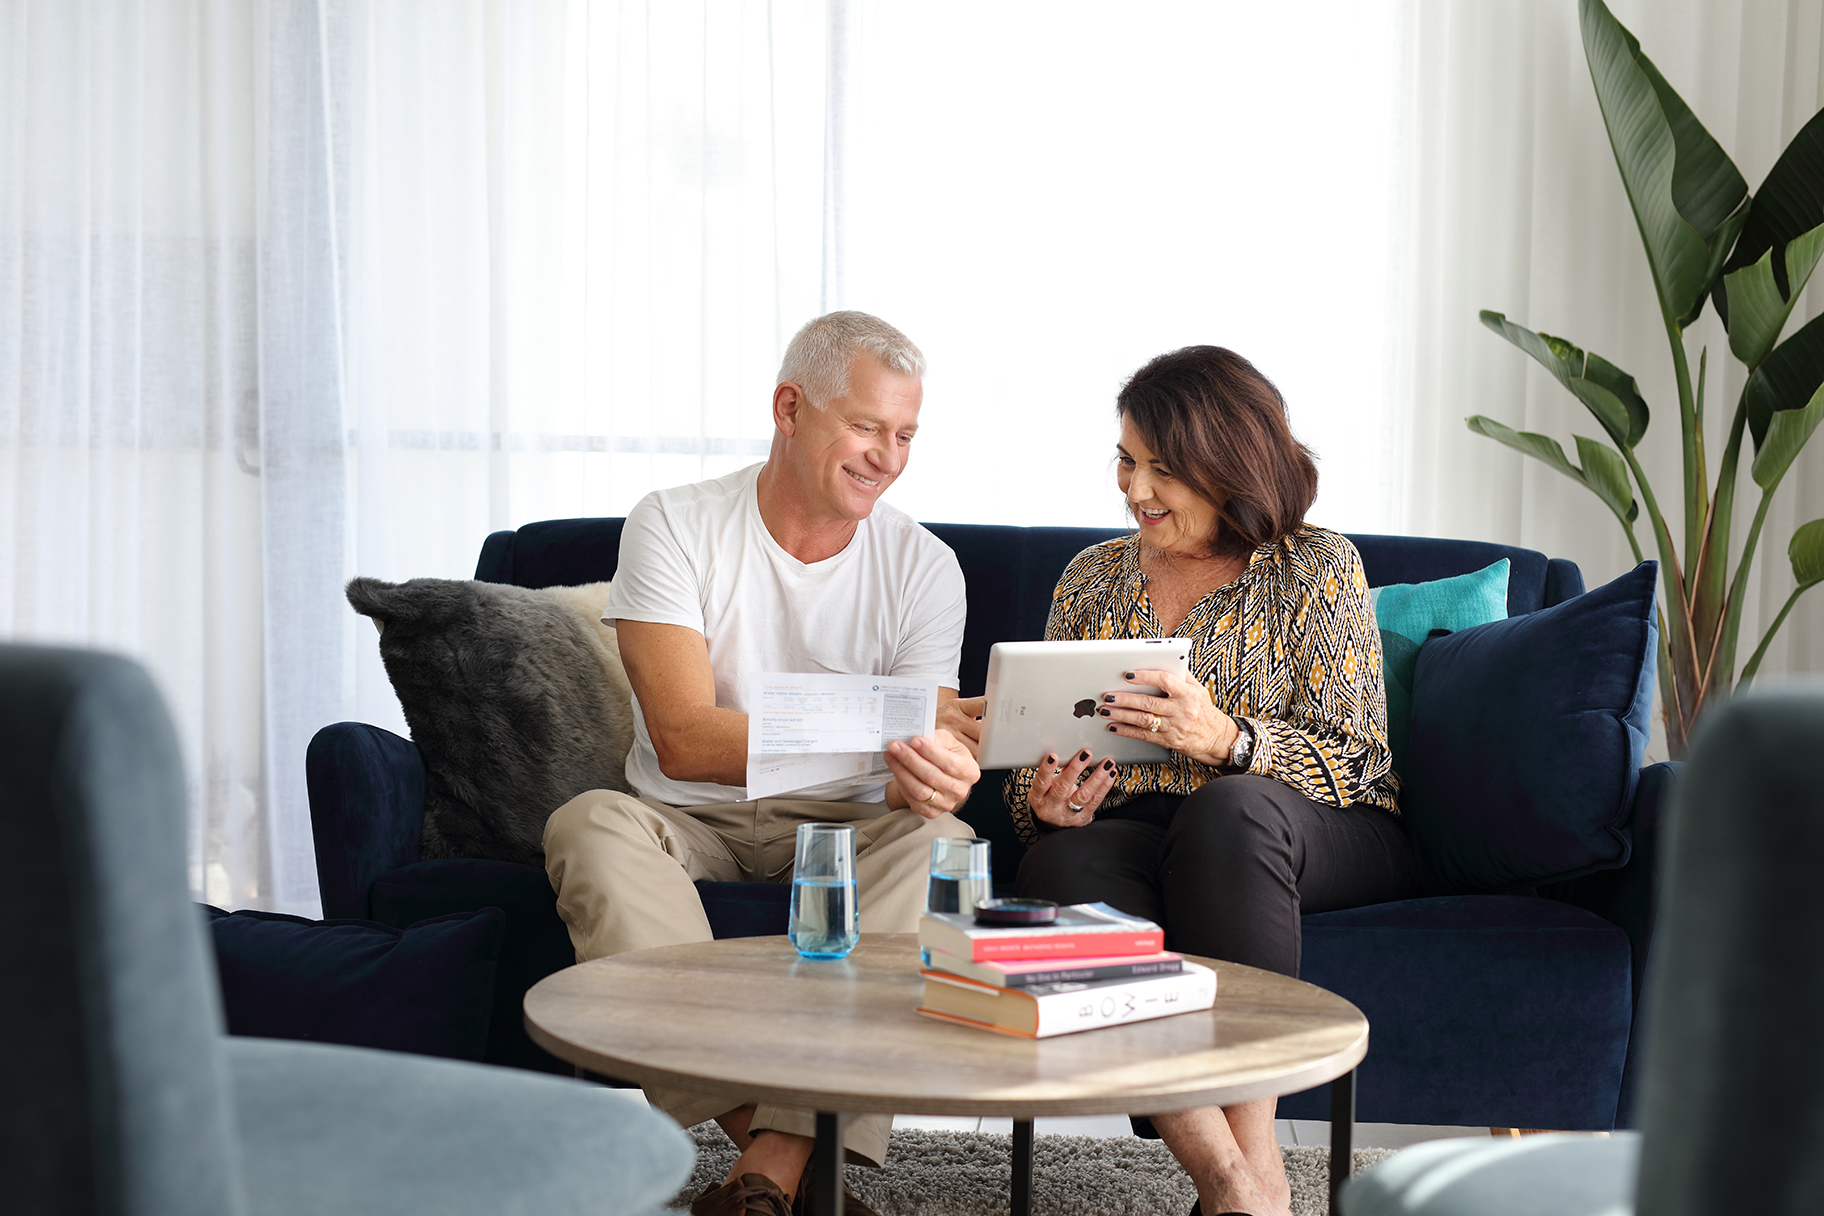 Man and woman looking at bill and tablet on couch